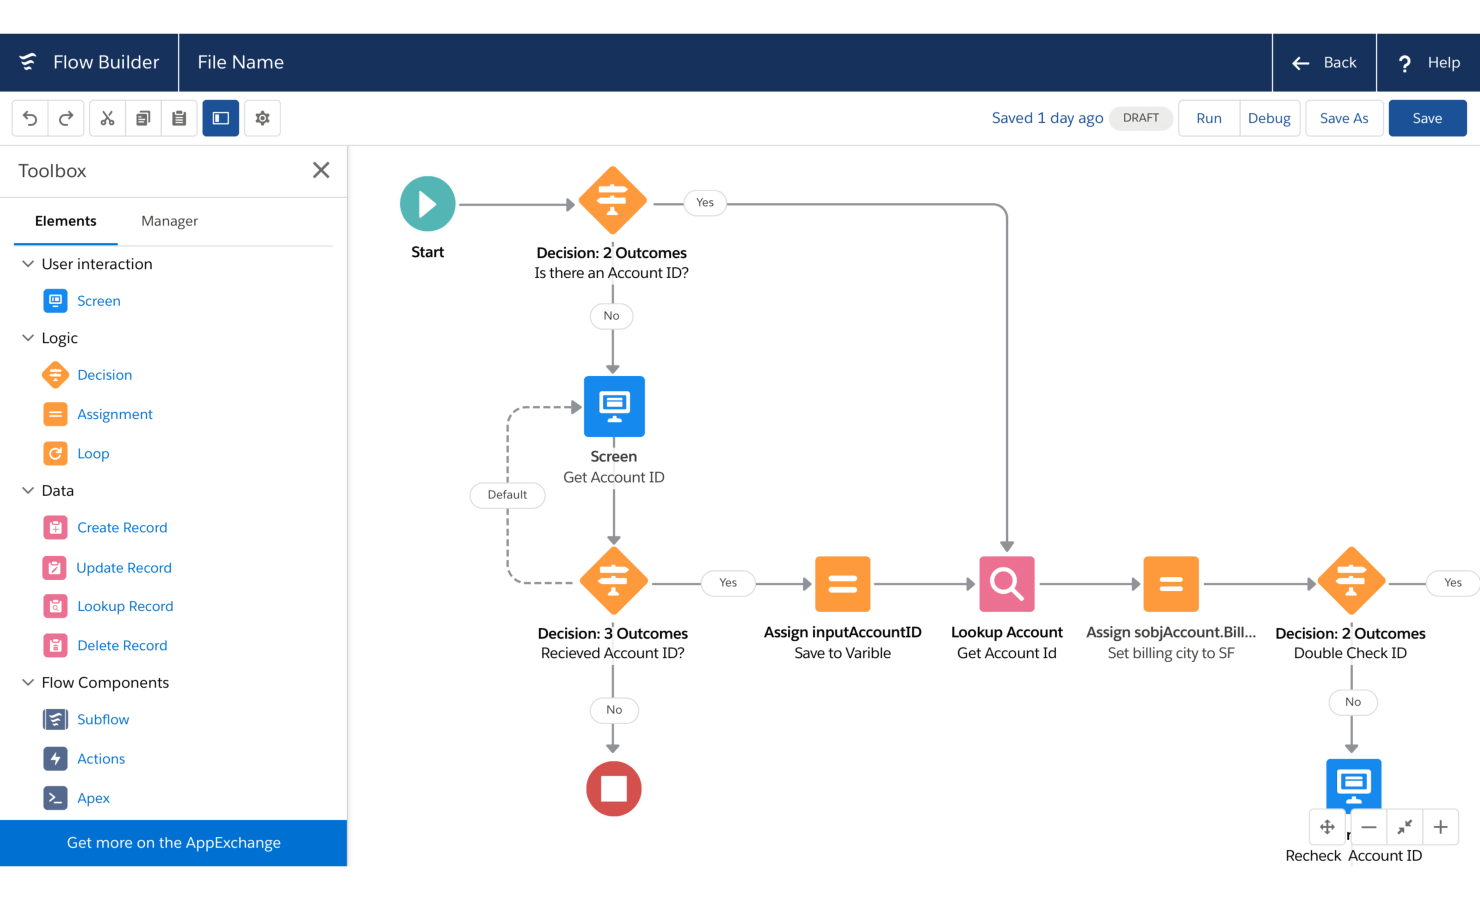 salesforce workflow ss - Workplace Innovation Platforms: The 2021 Guide